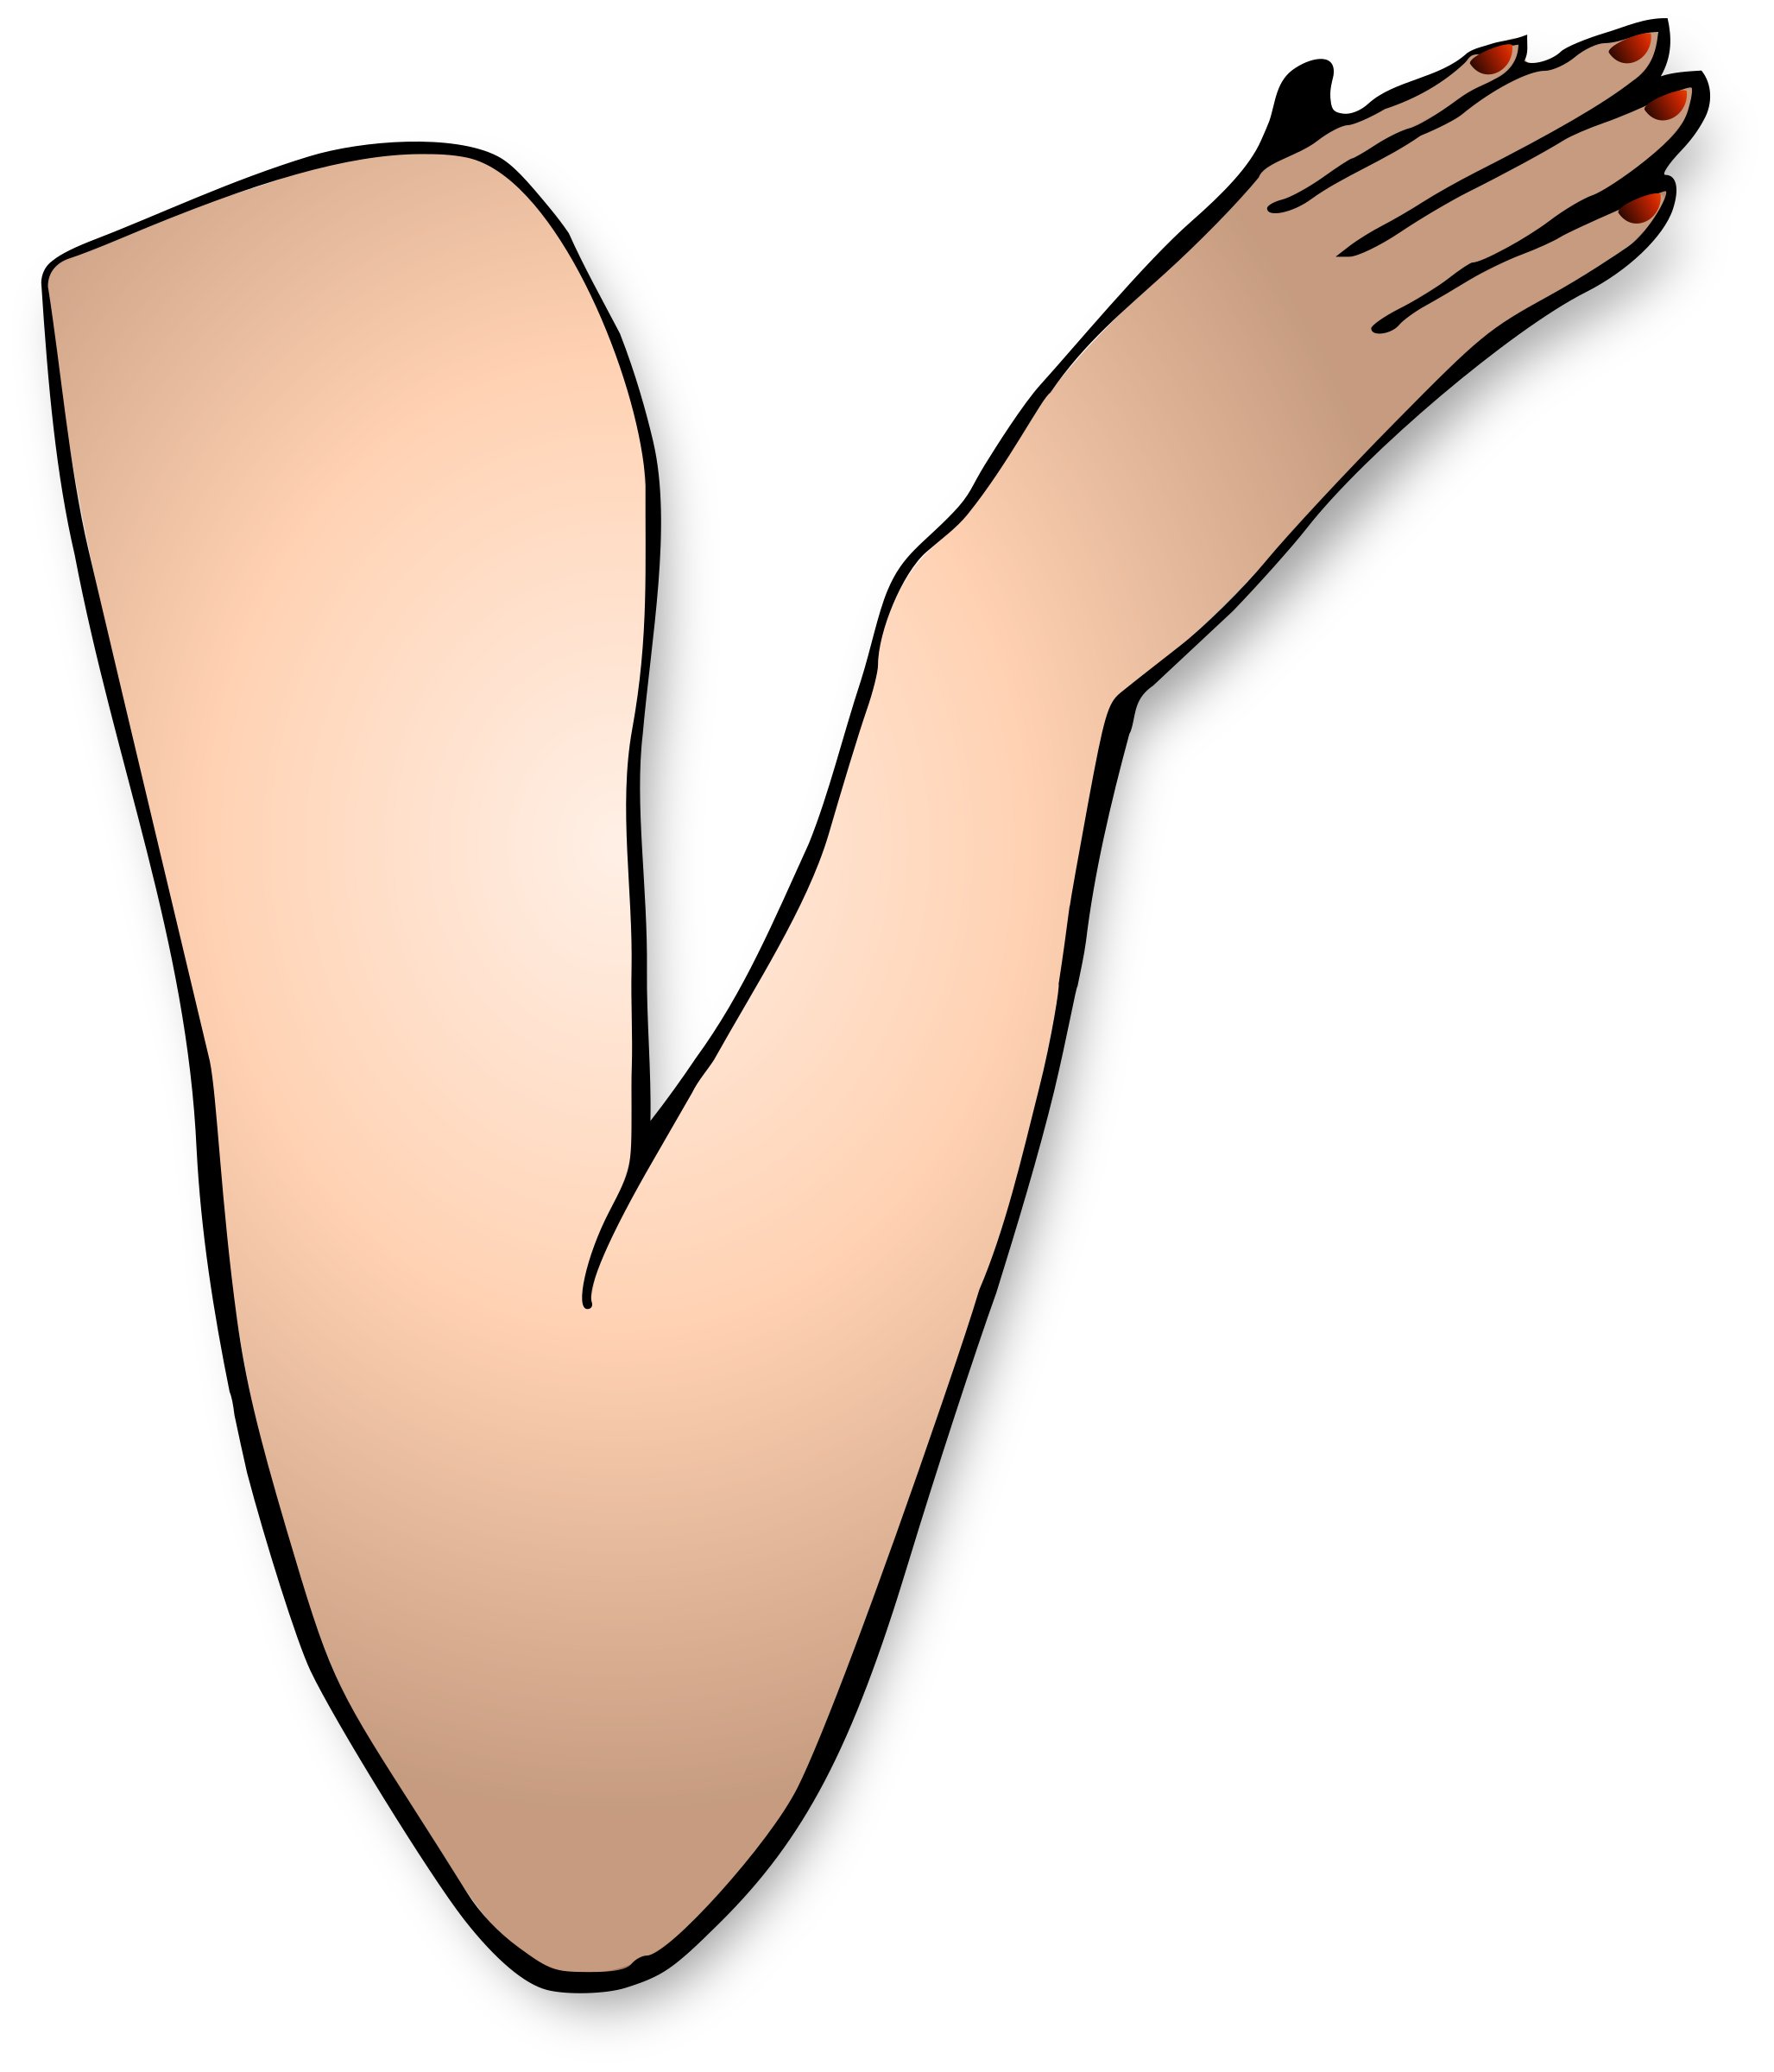 Png image mart. Hand clipart arm